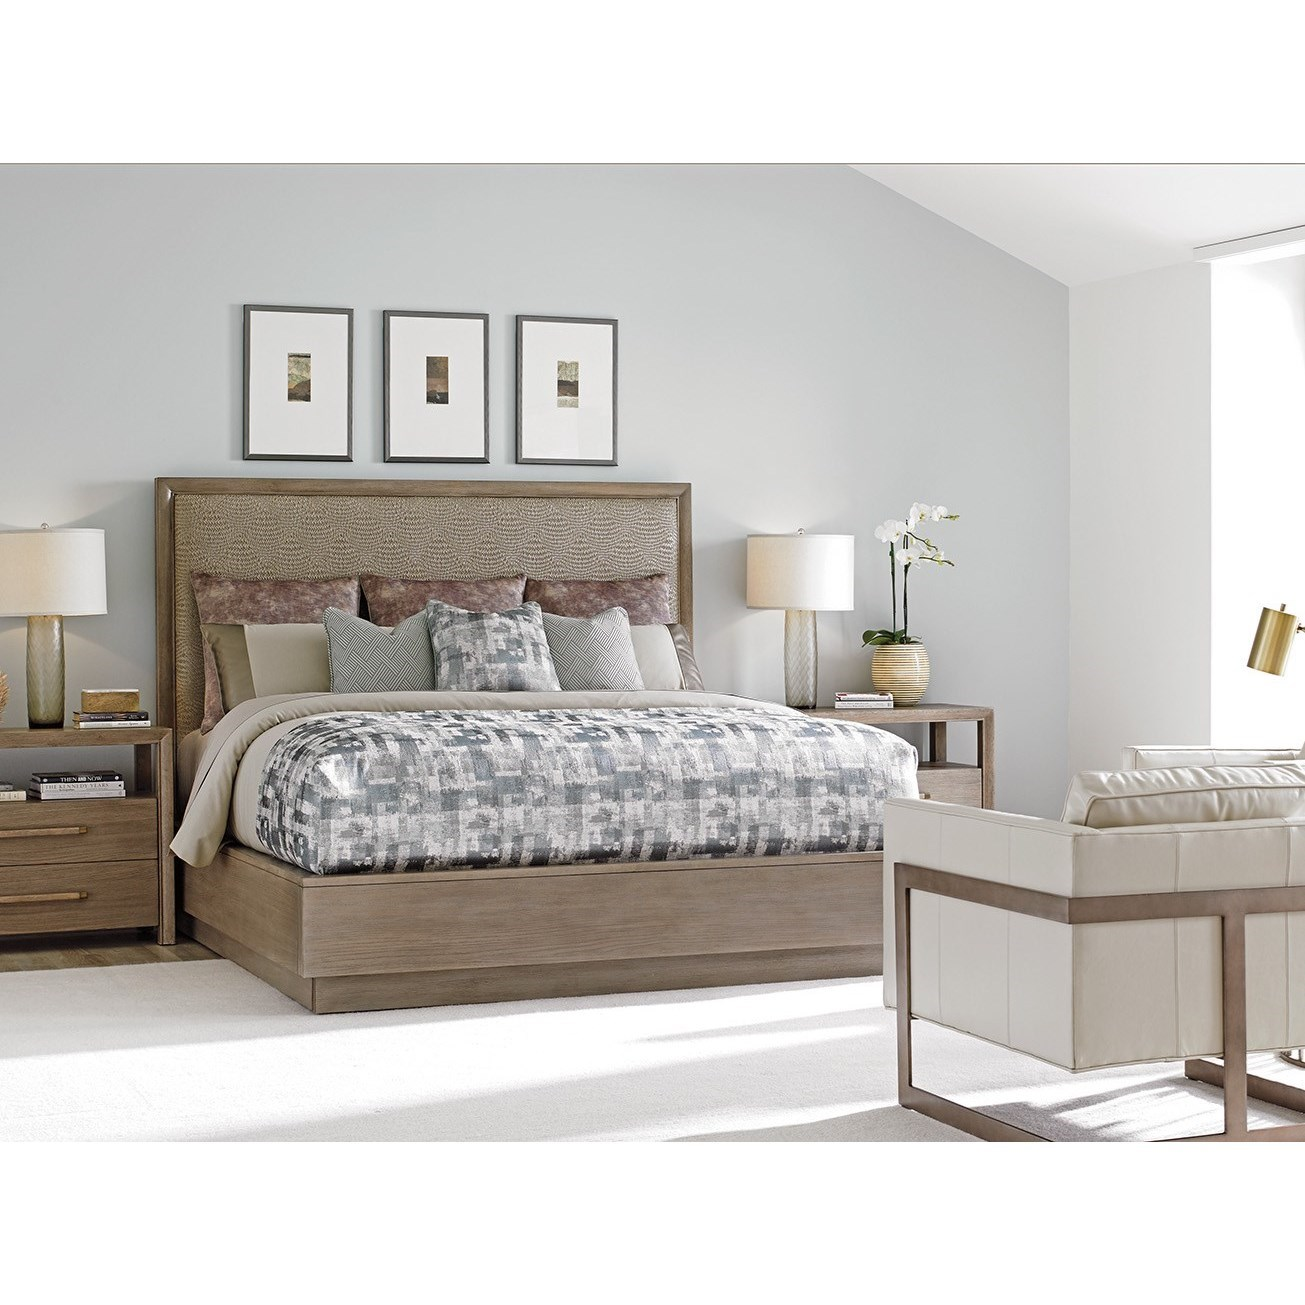 Lexington Shadow Play Queen Bedroom Group - Item Number: 725 Q Bedroom Group 1